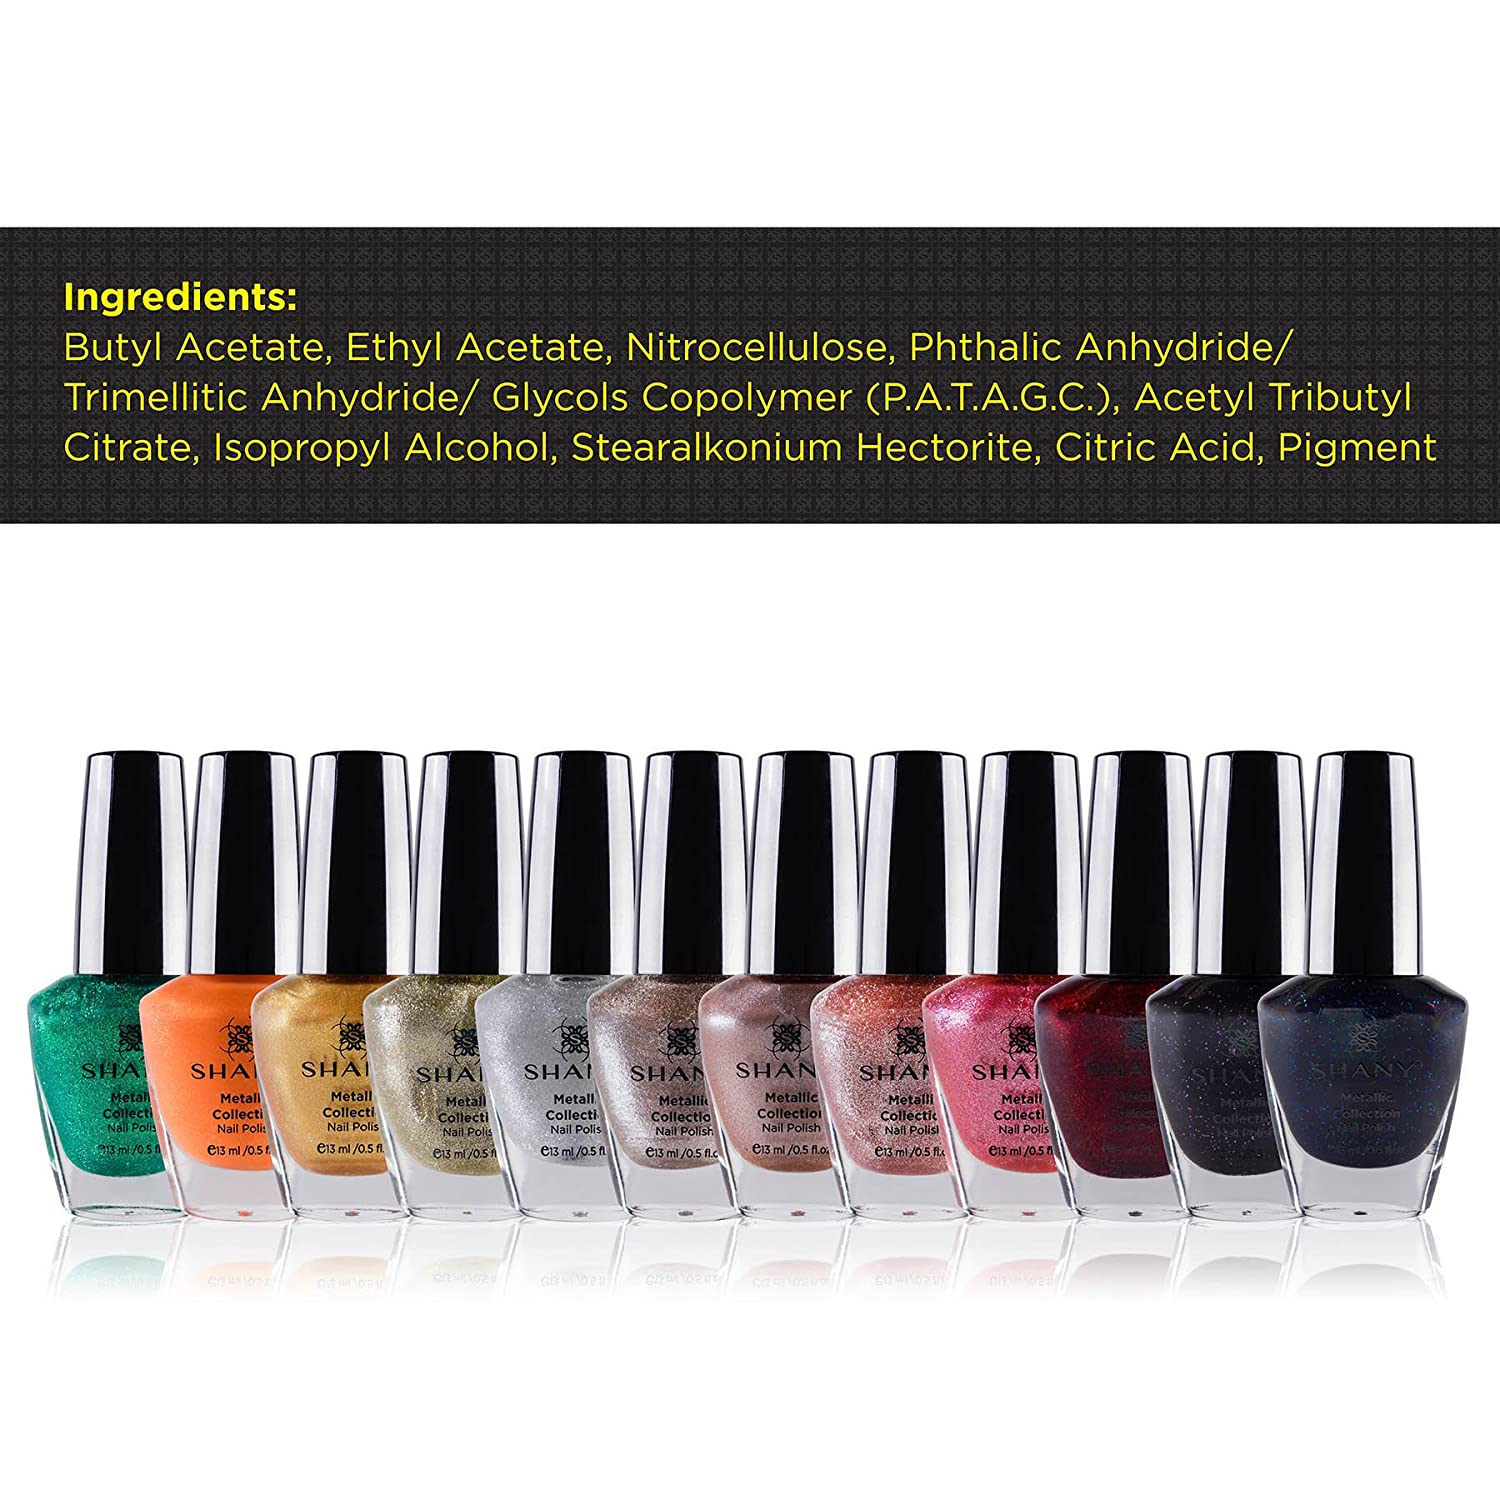 Amazon.com : SHANY Nail Polish Set - 12 Futuristic Shades in ...